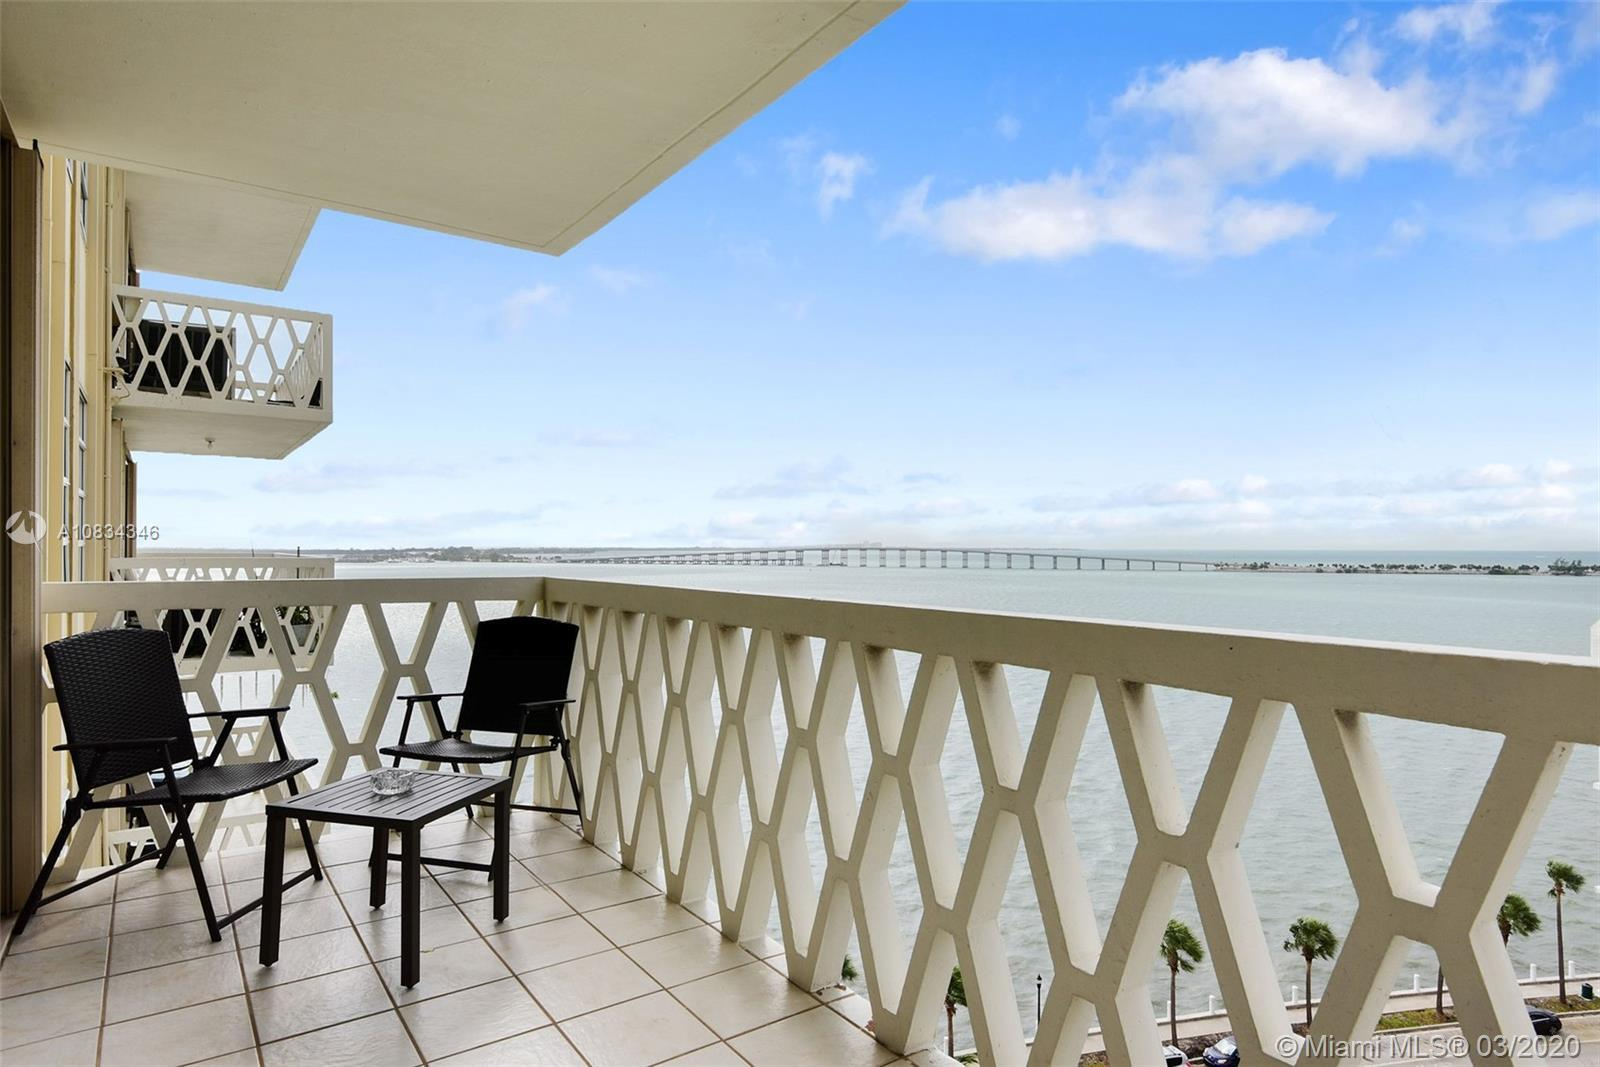 Enjoy the Brickell lifestyle AND come home to tranquility. Nestled just along Brickell Bay Drive, Br